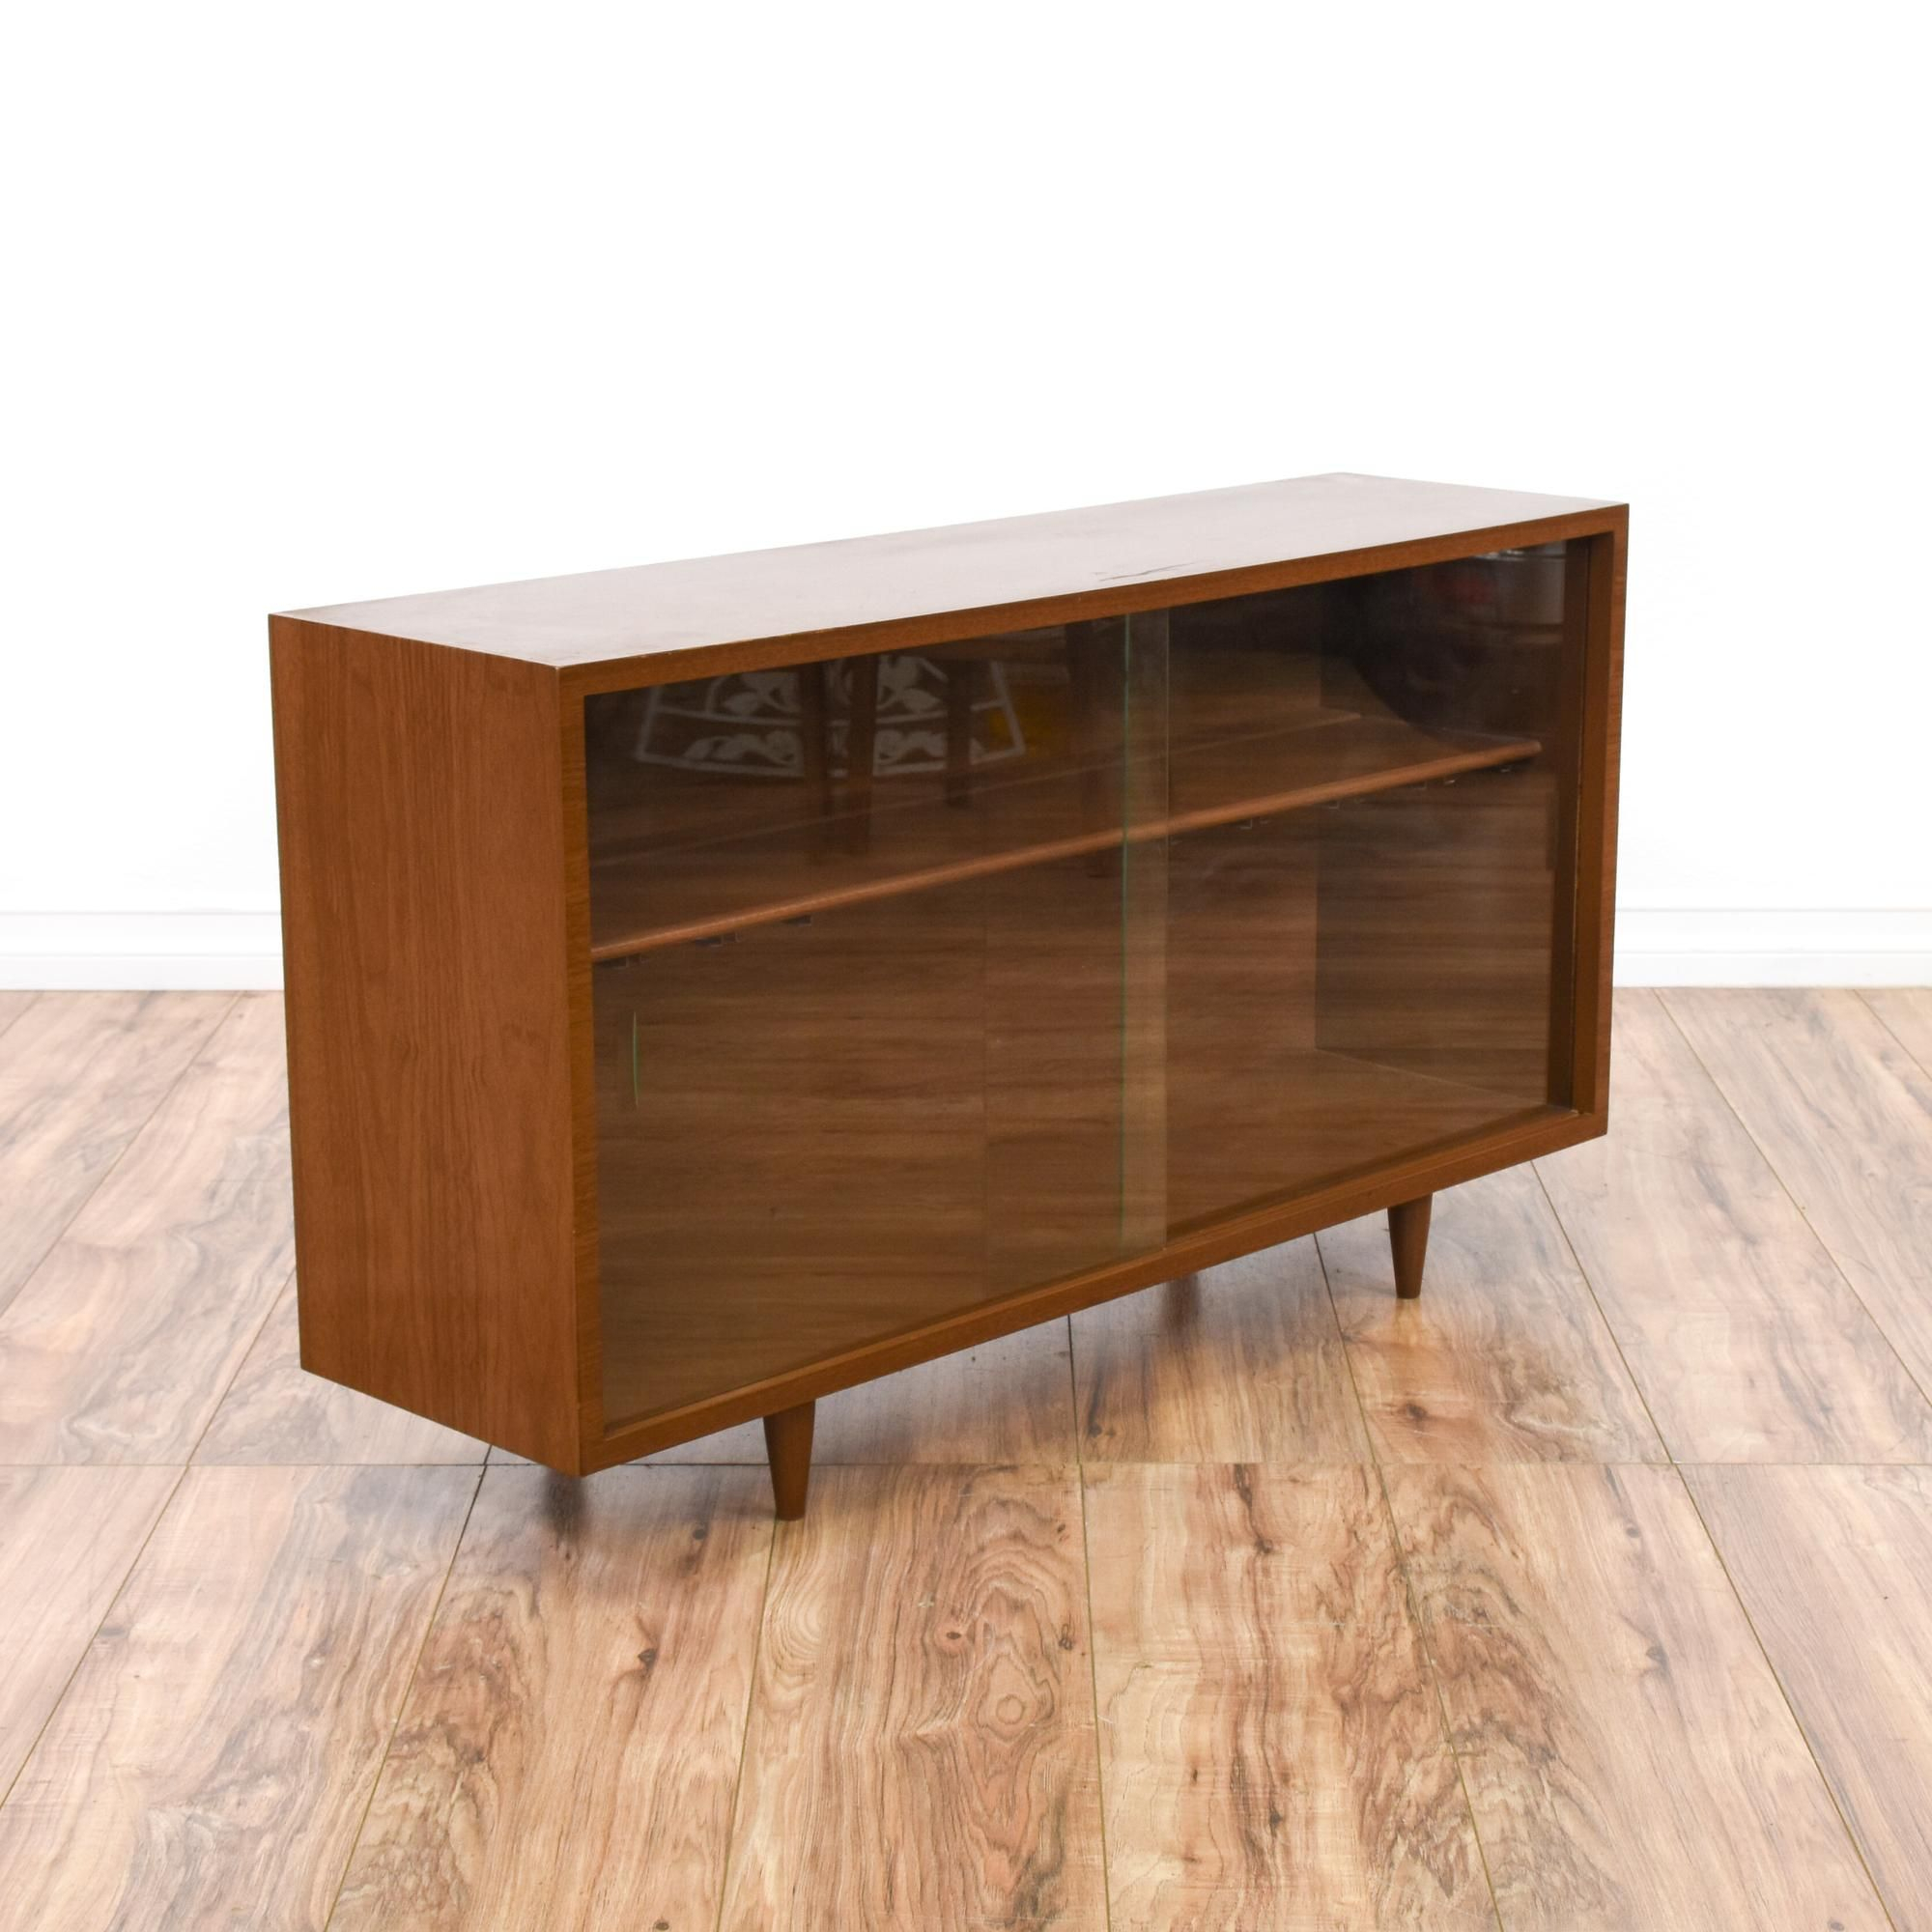 This Low Mid Century Modern Display Case Is Featured In A Throughout Contemporary Wooden Buffets With One Side Door Storage Cabinets And Two Drawers (View 16 of 30)